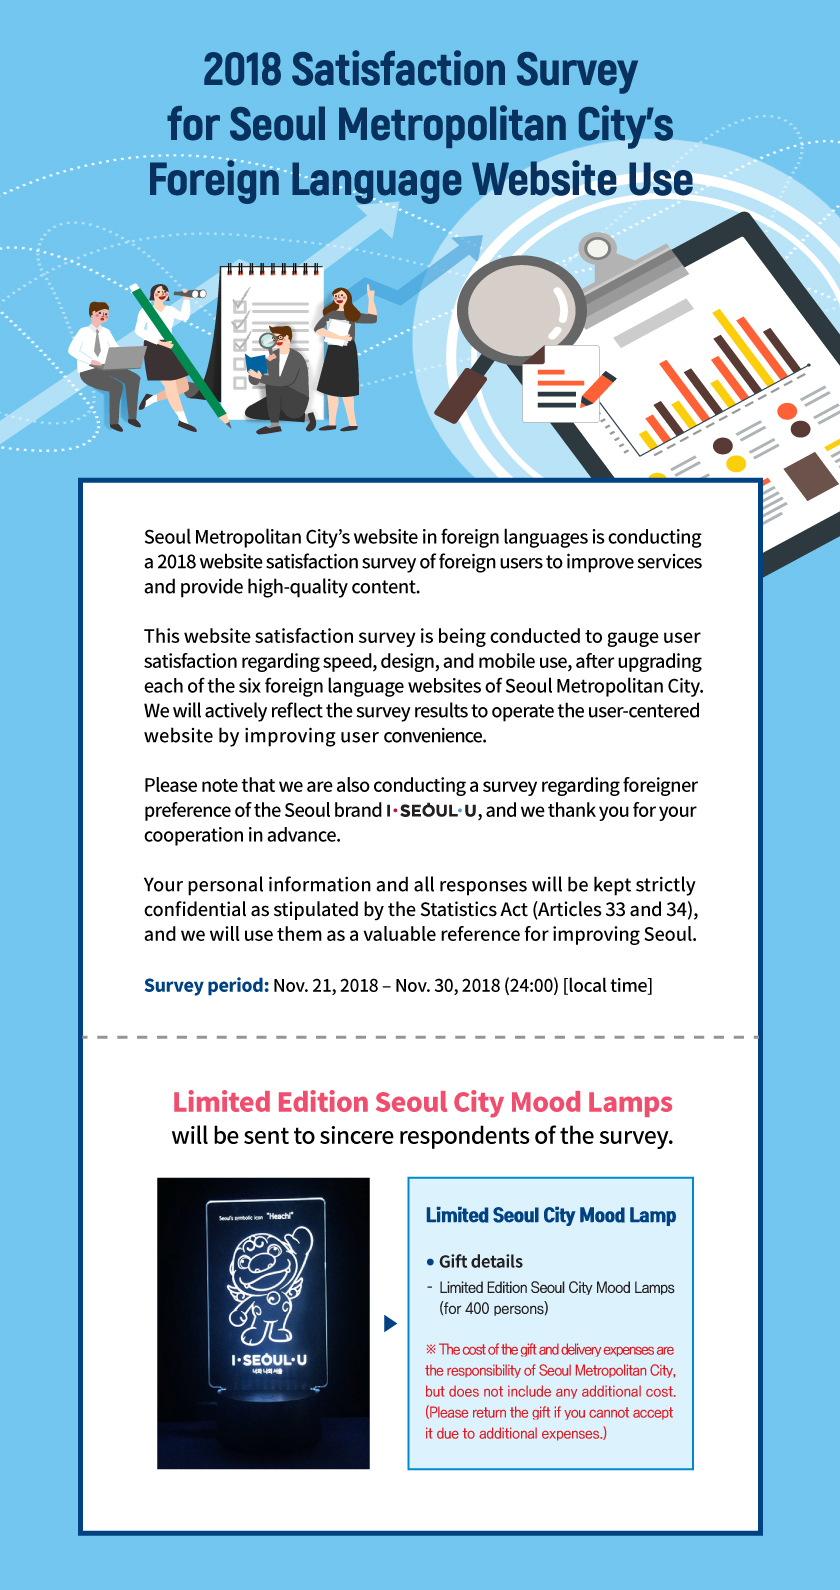 2018 Satisfaction survey for Seoul Metropolitan City's foreign language website use   Seoul Metropolitan City's website in foreign languages is conducting a 2018 website satisfaction survey of foreign users to improve services and provide high-quality content. This website satisfaction survey is being conducted to gauge user satisfaction regarding speed, design, and mobile use, after upgrading each of the six foreign language websites of Seoul Metropolitan City. We will actively reflect the survey results to operate the user-centered website by improving user convenience. Please note that we are also conducting a survey regarding foreigner preference of the Seoul brand I·SEOUL·U, and we thank you for your cooperation in advance.      Your personal information and all responses will be kept strictly confidential as stipulated by the Statistics Act (Articles 33 and 34), and we will use them as a valuable reference for improving Seoul.   Survey period: Nov. 21, 2018 – Nov. 30, 2018 (24:00) [local time]   Limited Edition Seoul City Mood Lamps will be sent to sincere respondents of the survey.  Limited Seoul City Mood Lamp   ◎ Gift details (400 people)     - 400 Limited Edition Seoul City Mood Lamps     - The cost of the gift and delivery expenses are the responsibility of Seoul Metropolitan City, but does not include any additional cost. (Please return the gift if you cannot accept it due to additional expenses.)